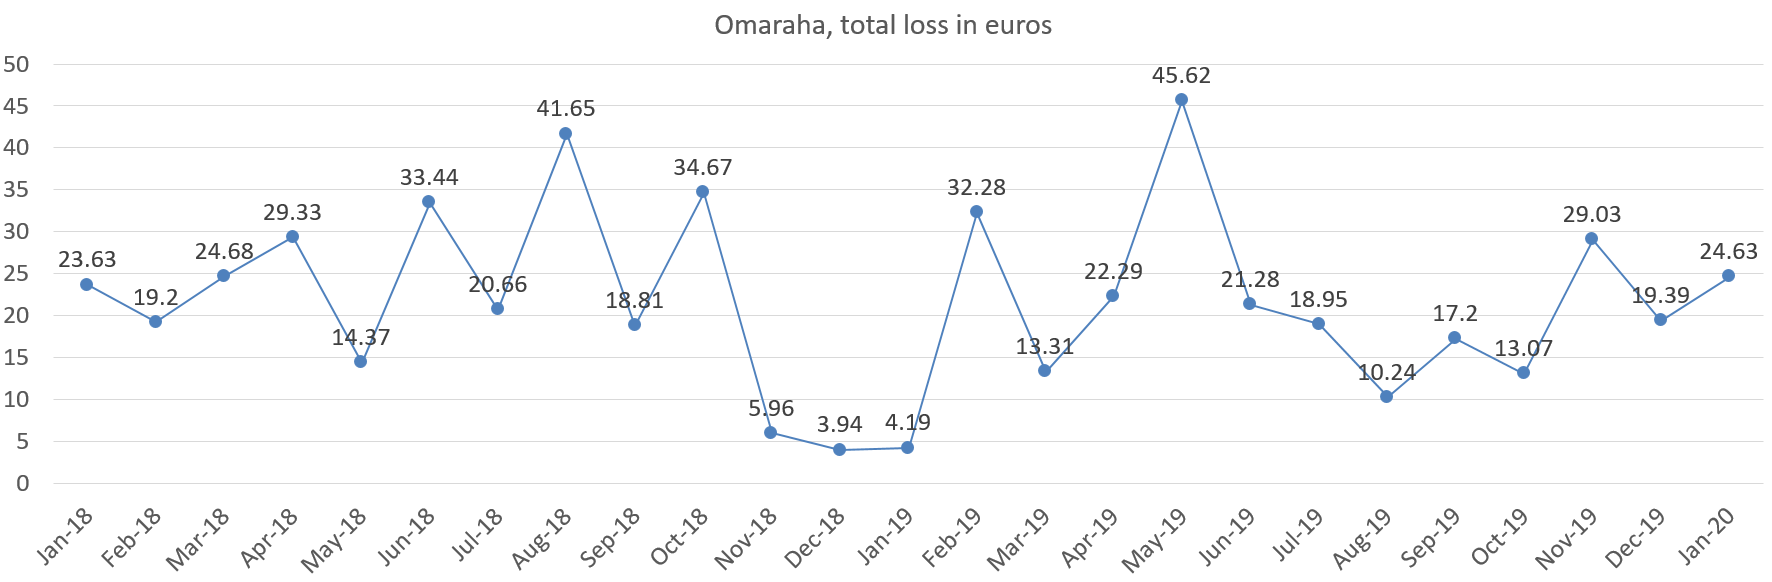 Omaraha total loss in euros, january 2020 portfolio